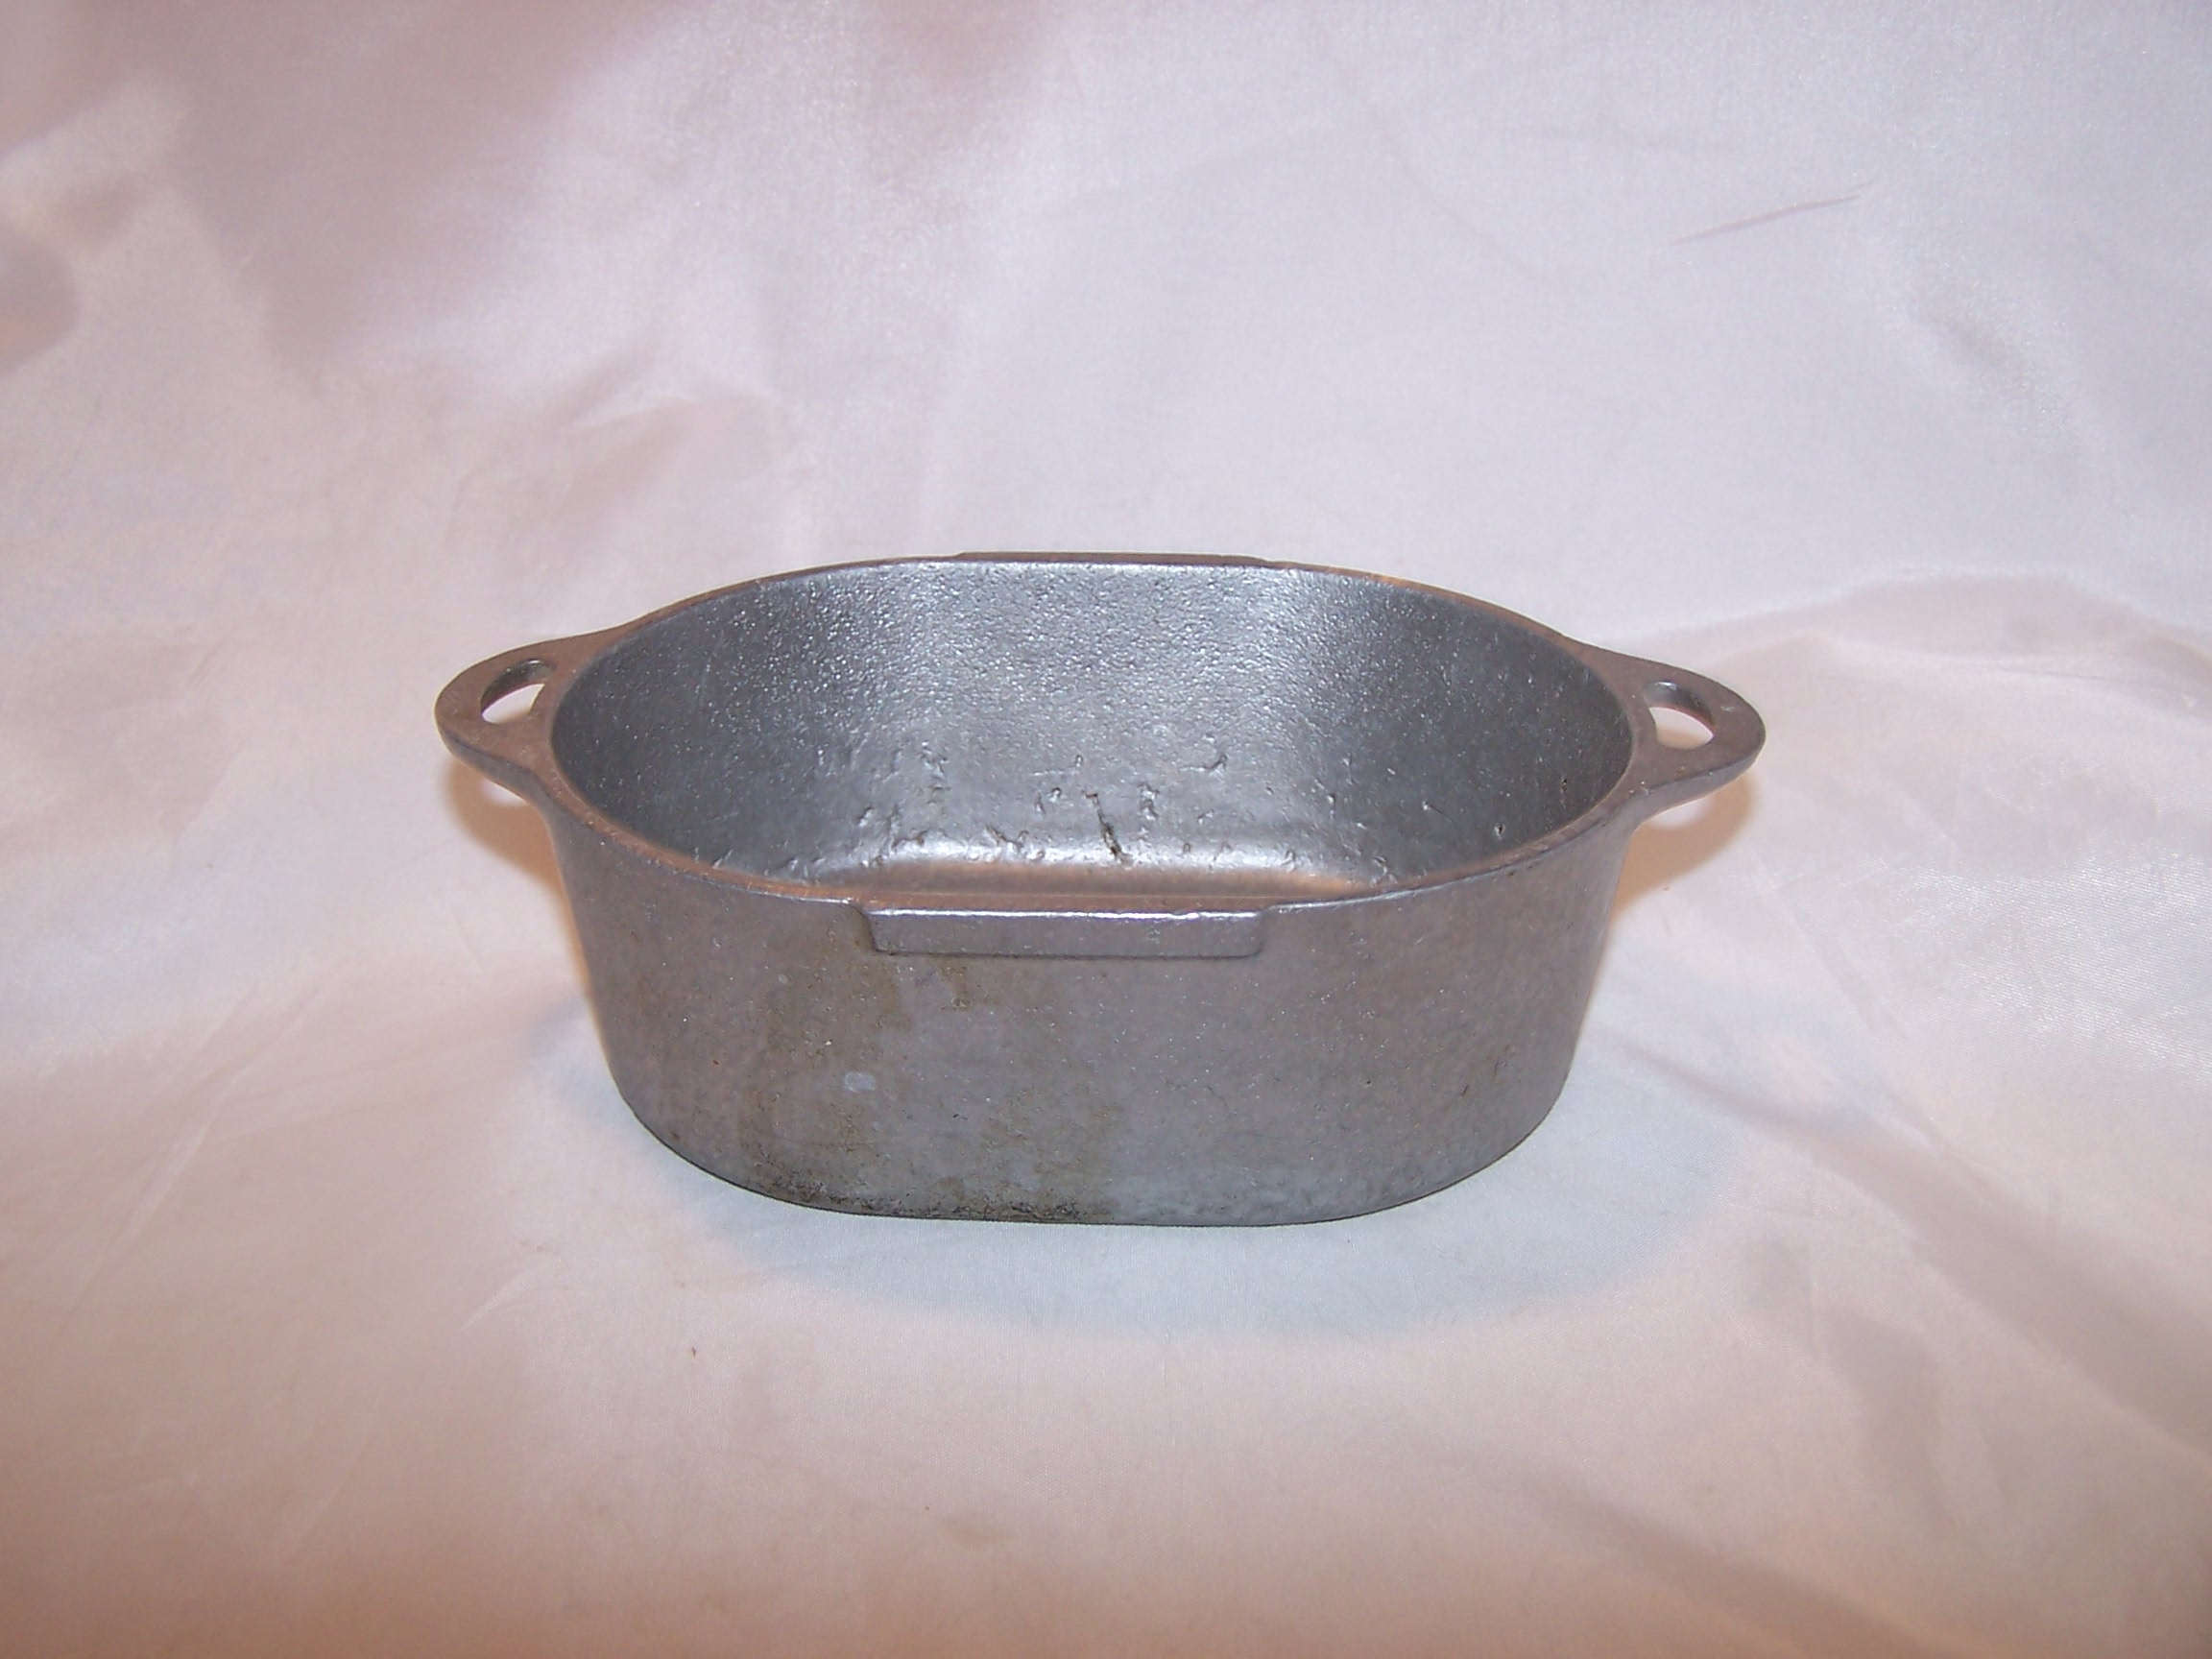 Image 1 of Toy Roaster, Roasting Pan, Vintage Toy